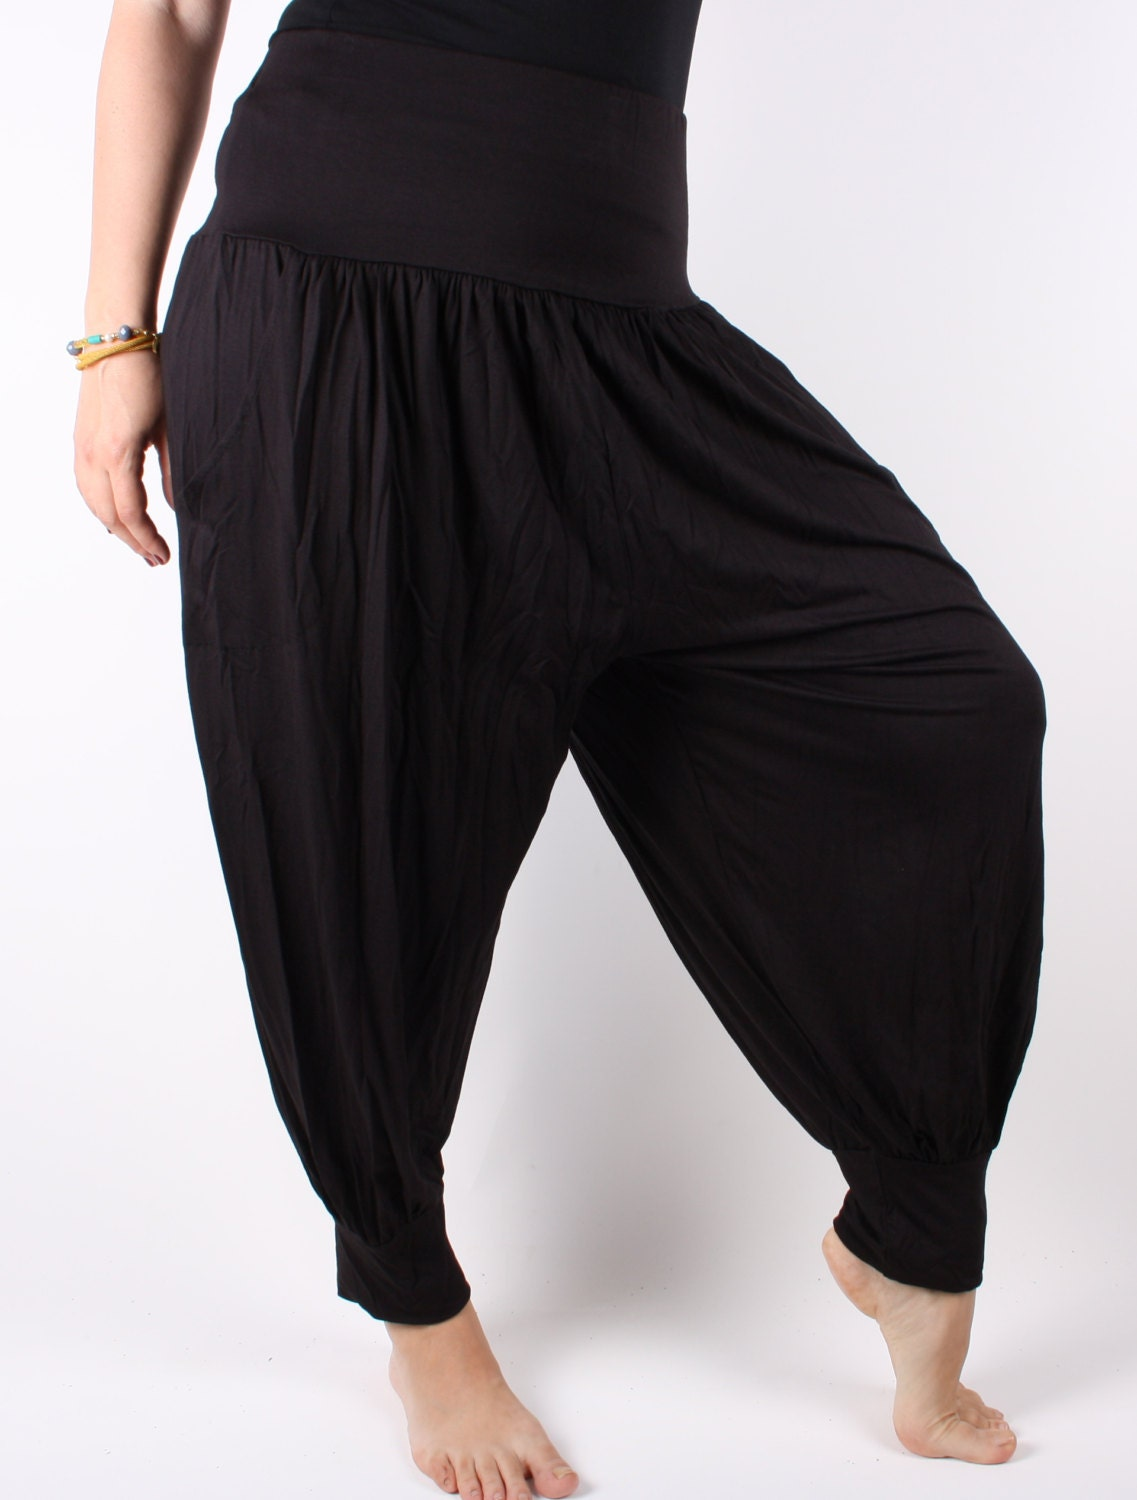 Massive selection of Bohemian Harem Pants hand crafted in Northern s2w6s5q3to.gq: Men's Harem Pants, Women's Harem Pants, Plus Sized Harem Pants.